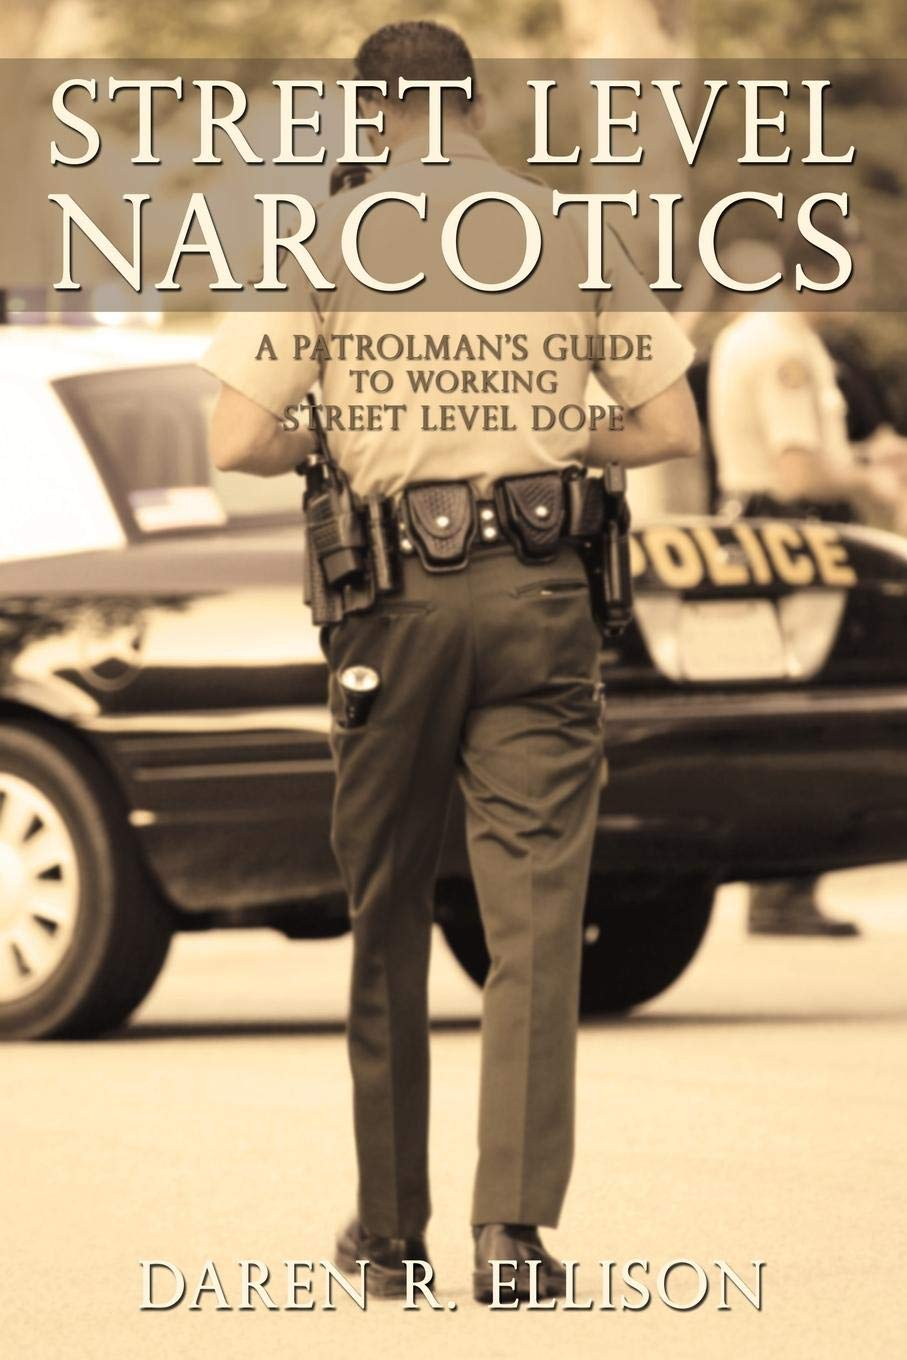 Street Level Narcotics: A Patrolman's Guide To Working Street Level Dope